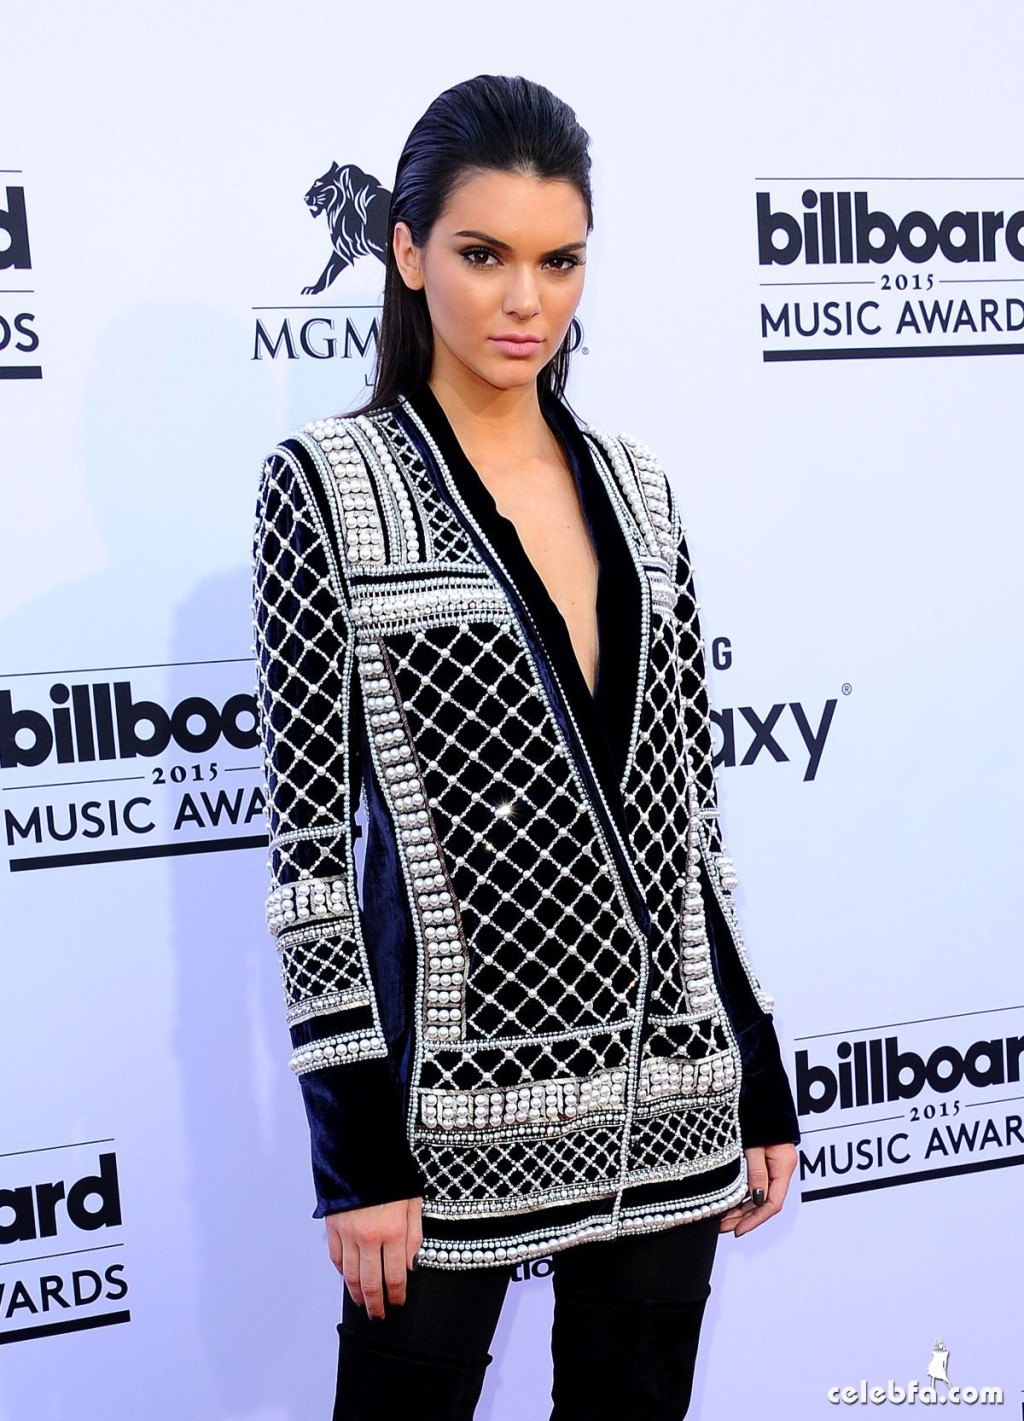 kendall-jenner-at-2015-billboard-music-awards (7)